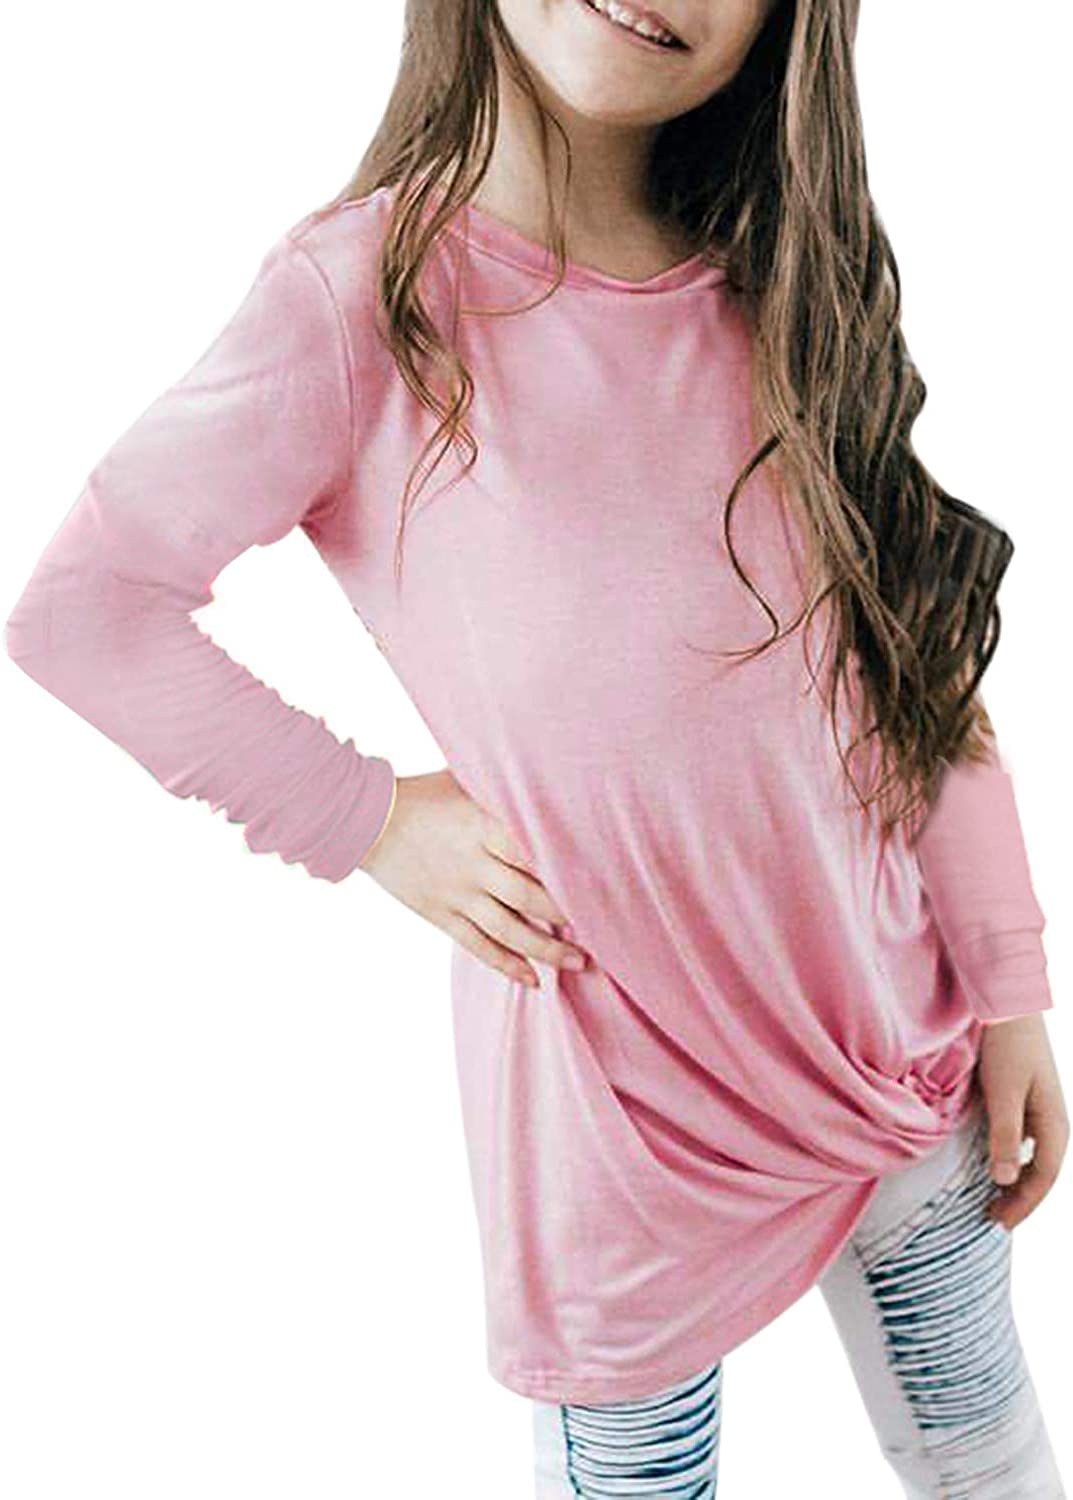 storeofbaby Girls Casual Long Sleeve Tunic Tops Winter Floral Knot Shirts for 4-13 Years